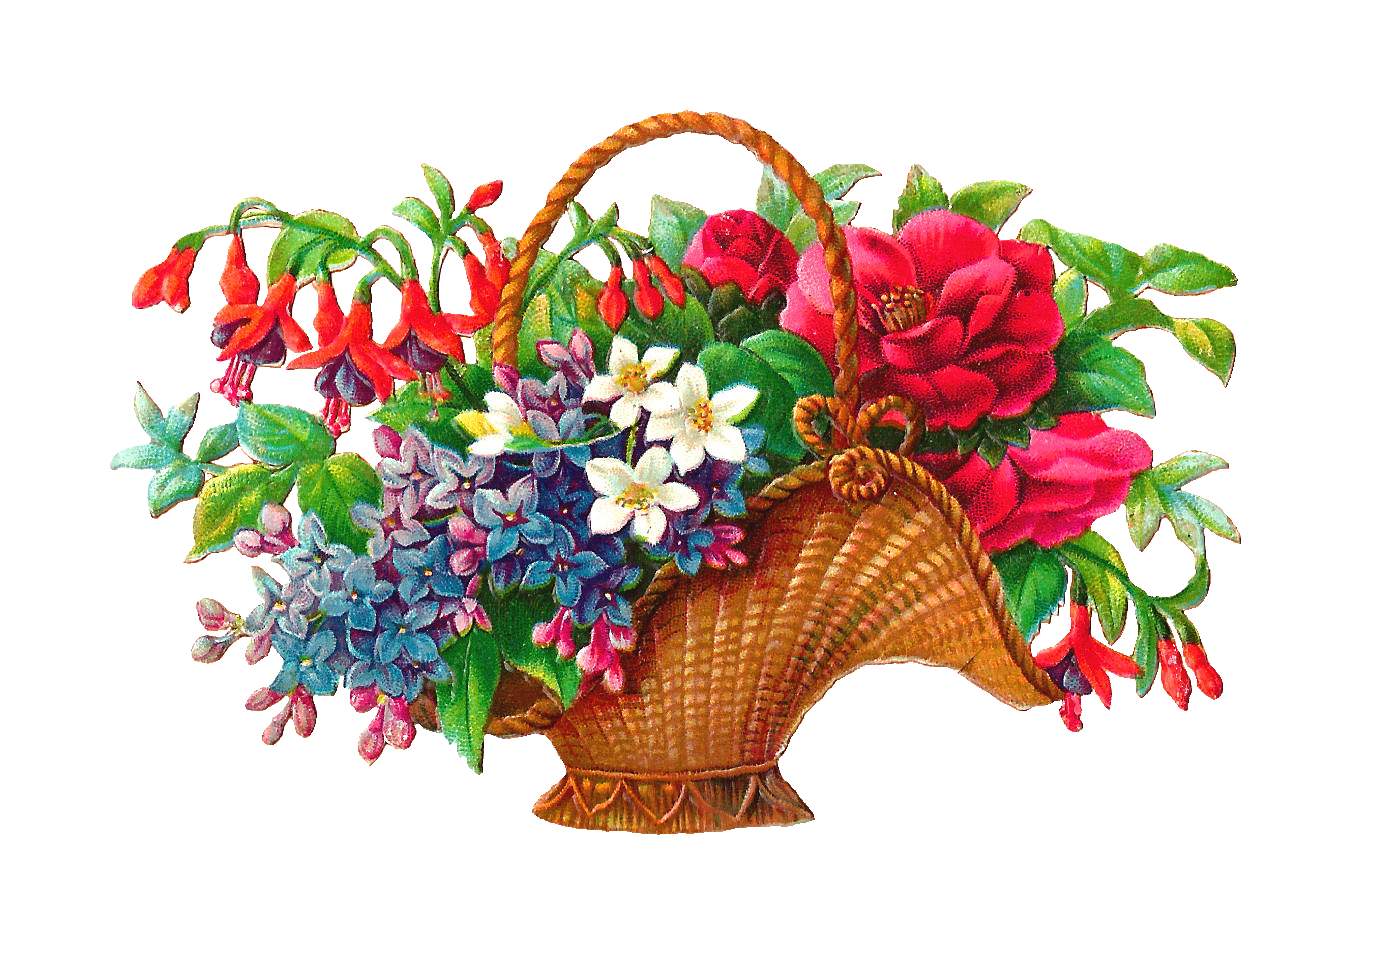 Basket full of pansies clipart graphic free download Antique Images: Free Flower Basket Clip Art: 2 Wicket Baskets Full ... graphic free download